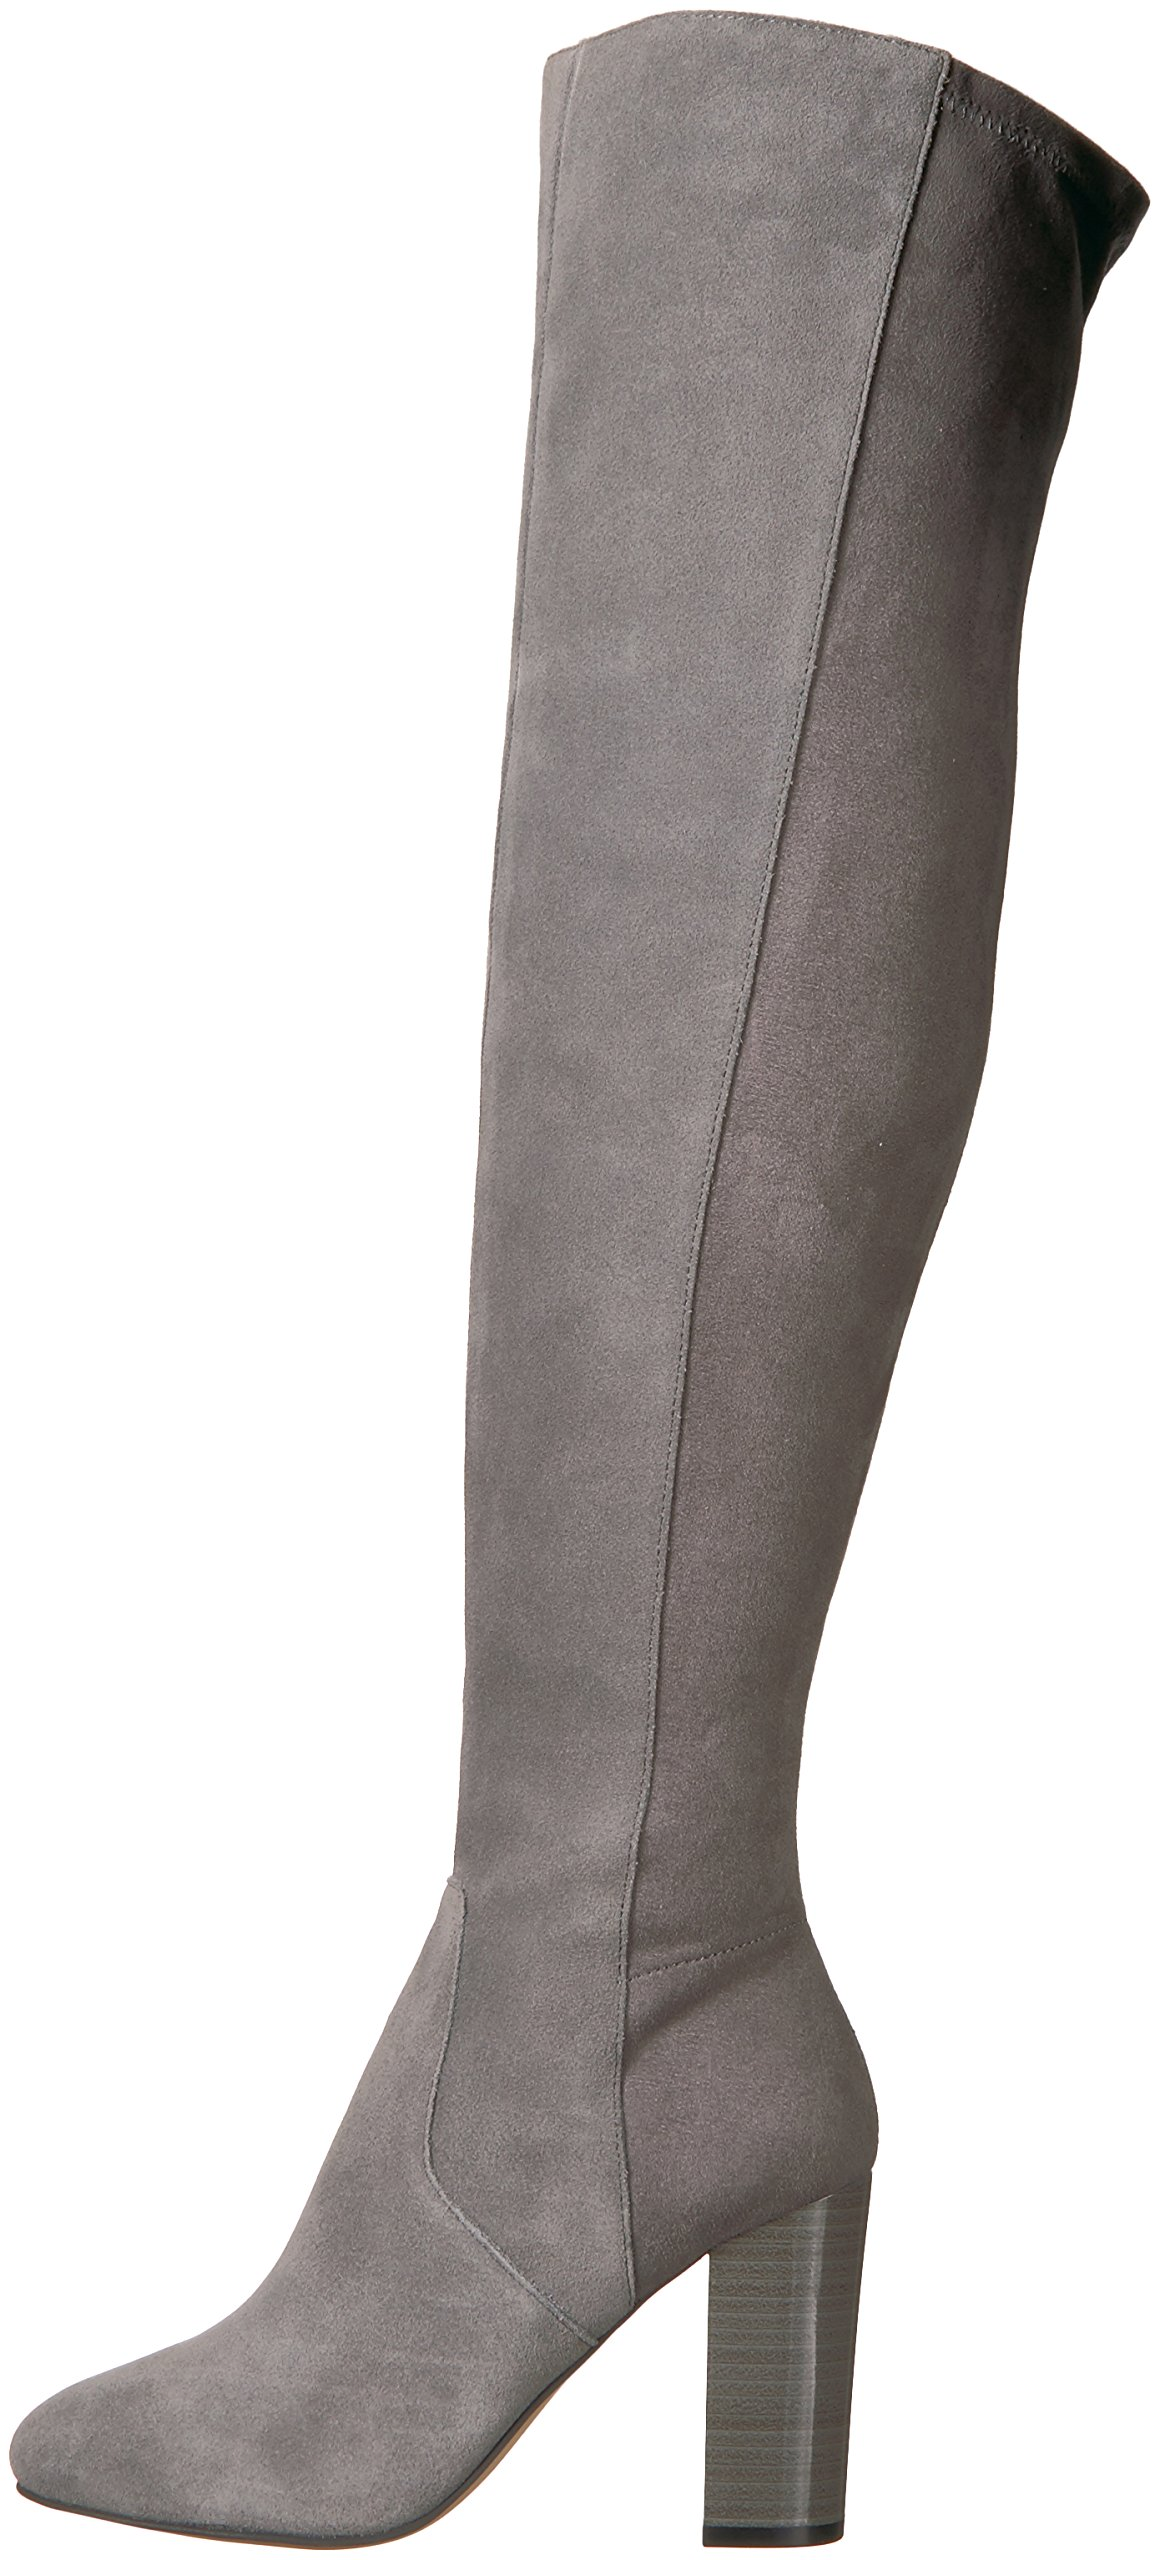 The Fix Women's Lyndsey Over-The-Knee Block-Heel Boot, Elephant Grey, 6.5 M US by The Fix (Image #5)